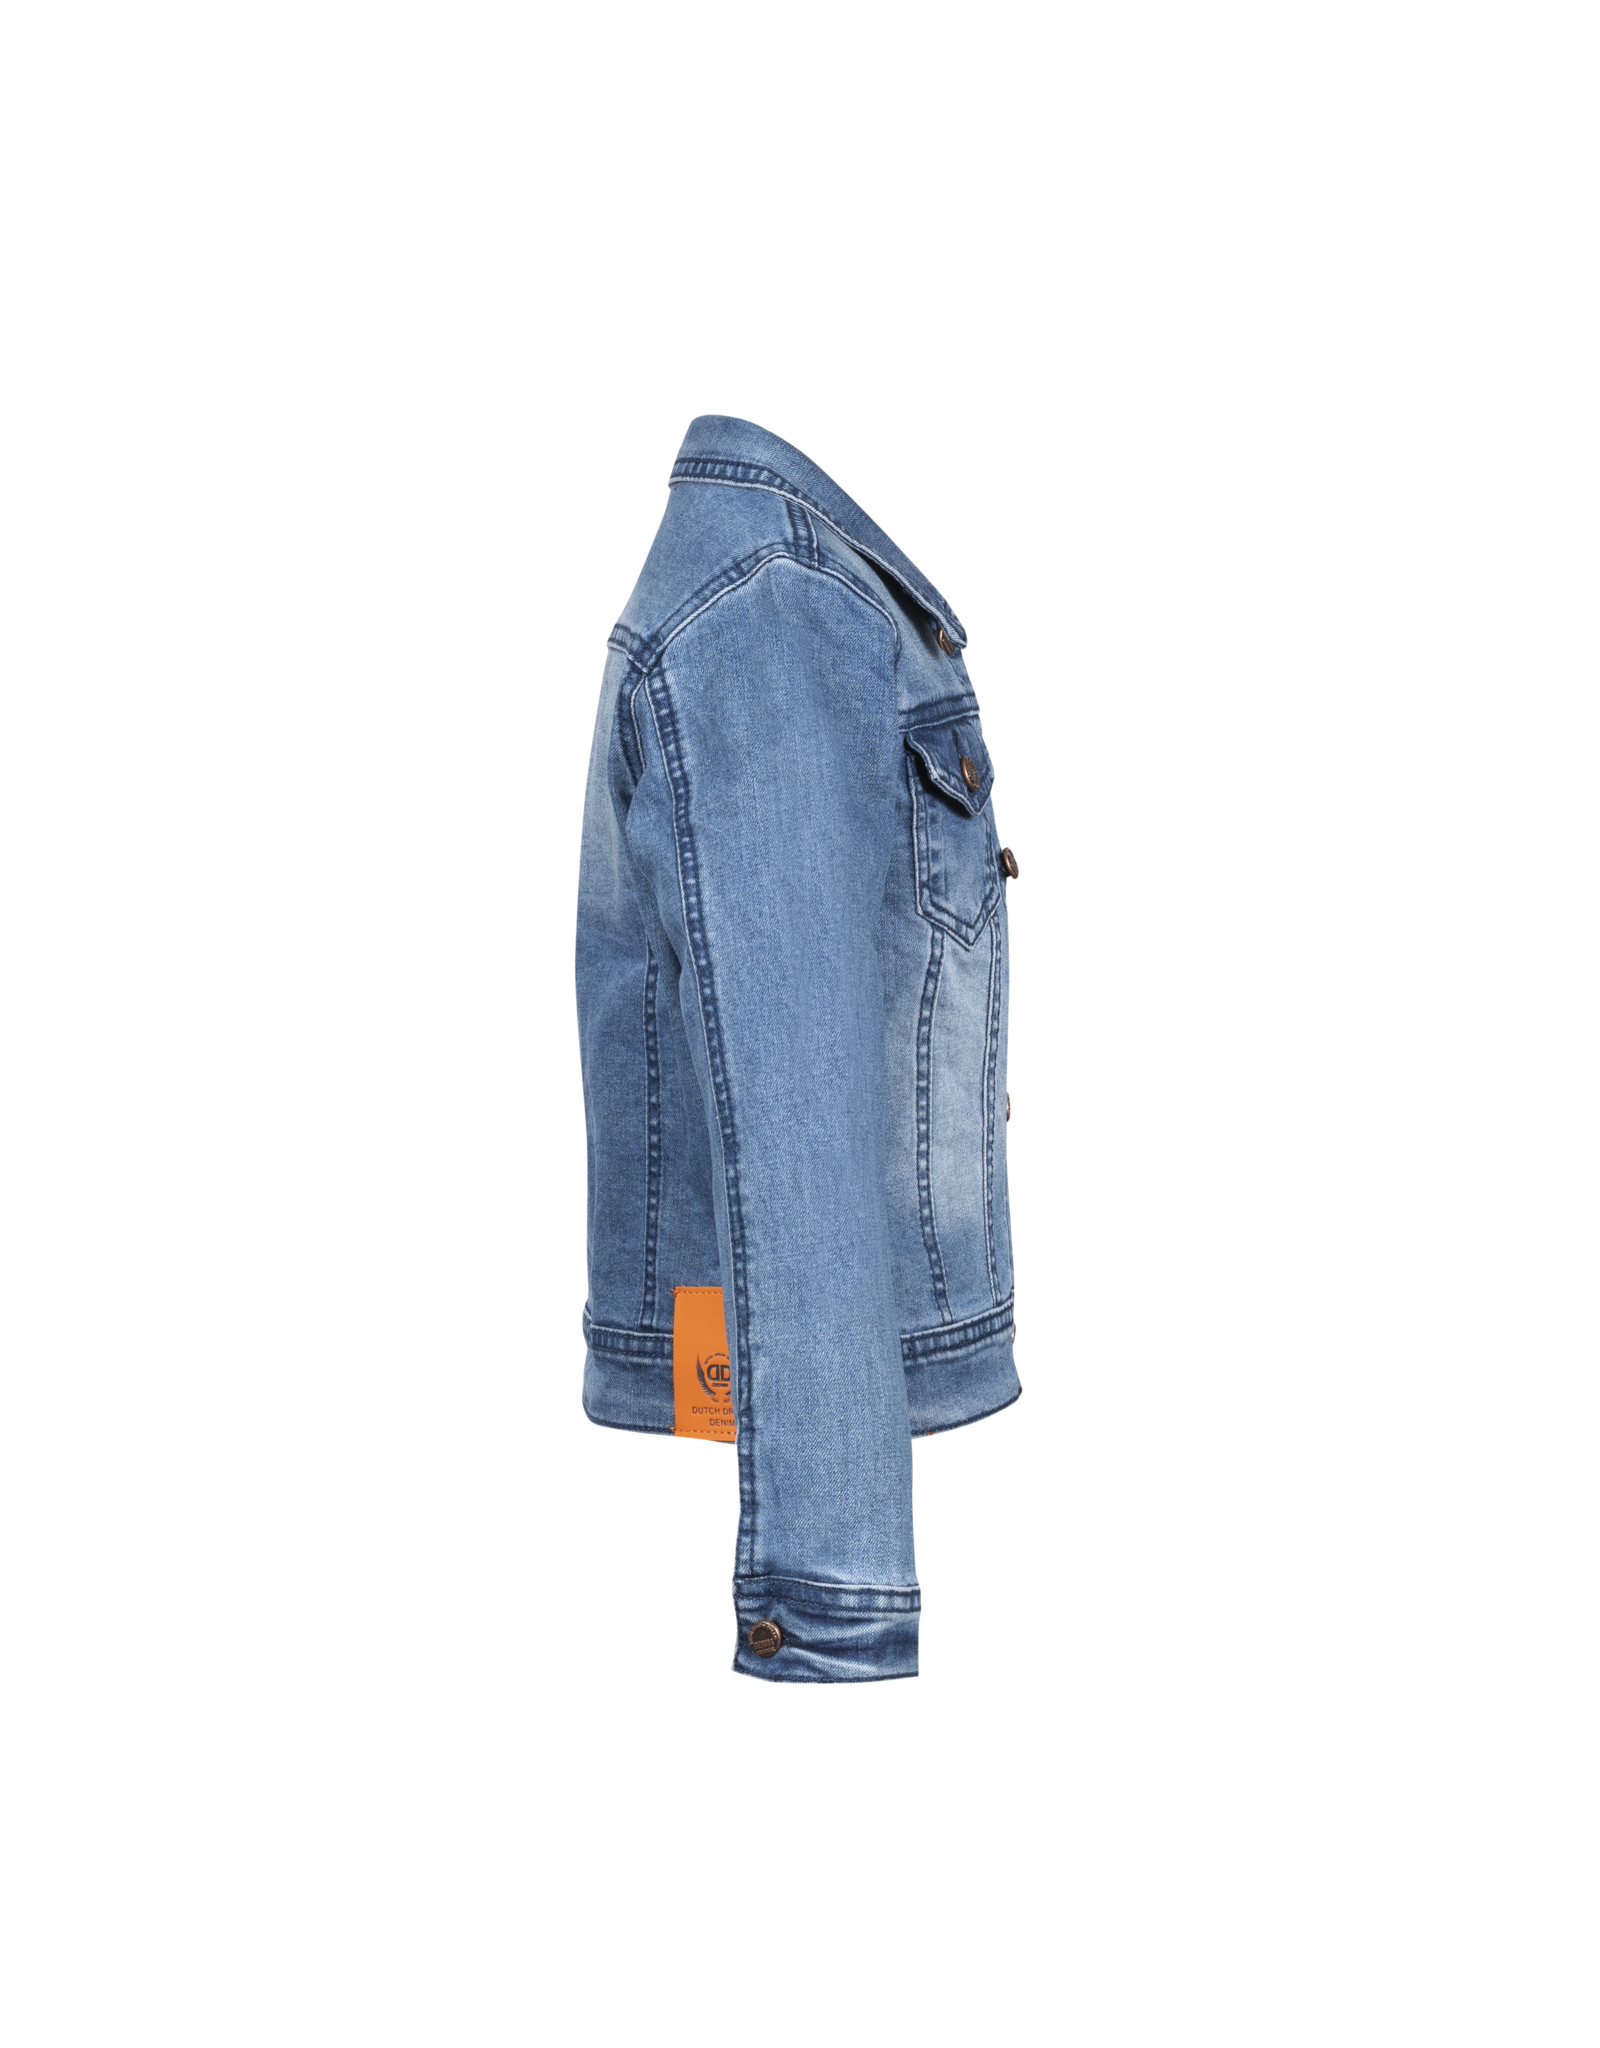 Dutch dream denim ELIMU, Power stretch spijkerjas